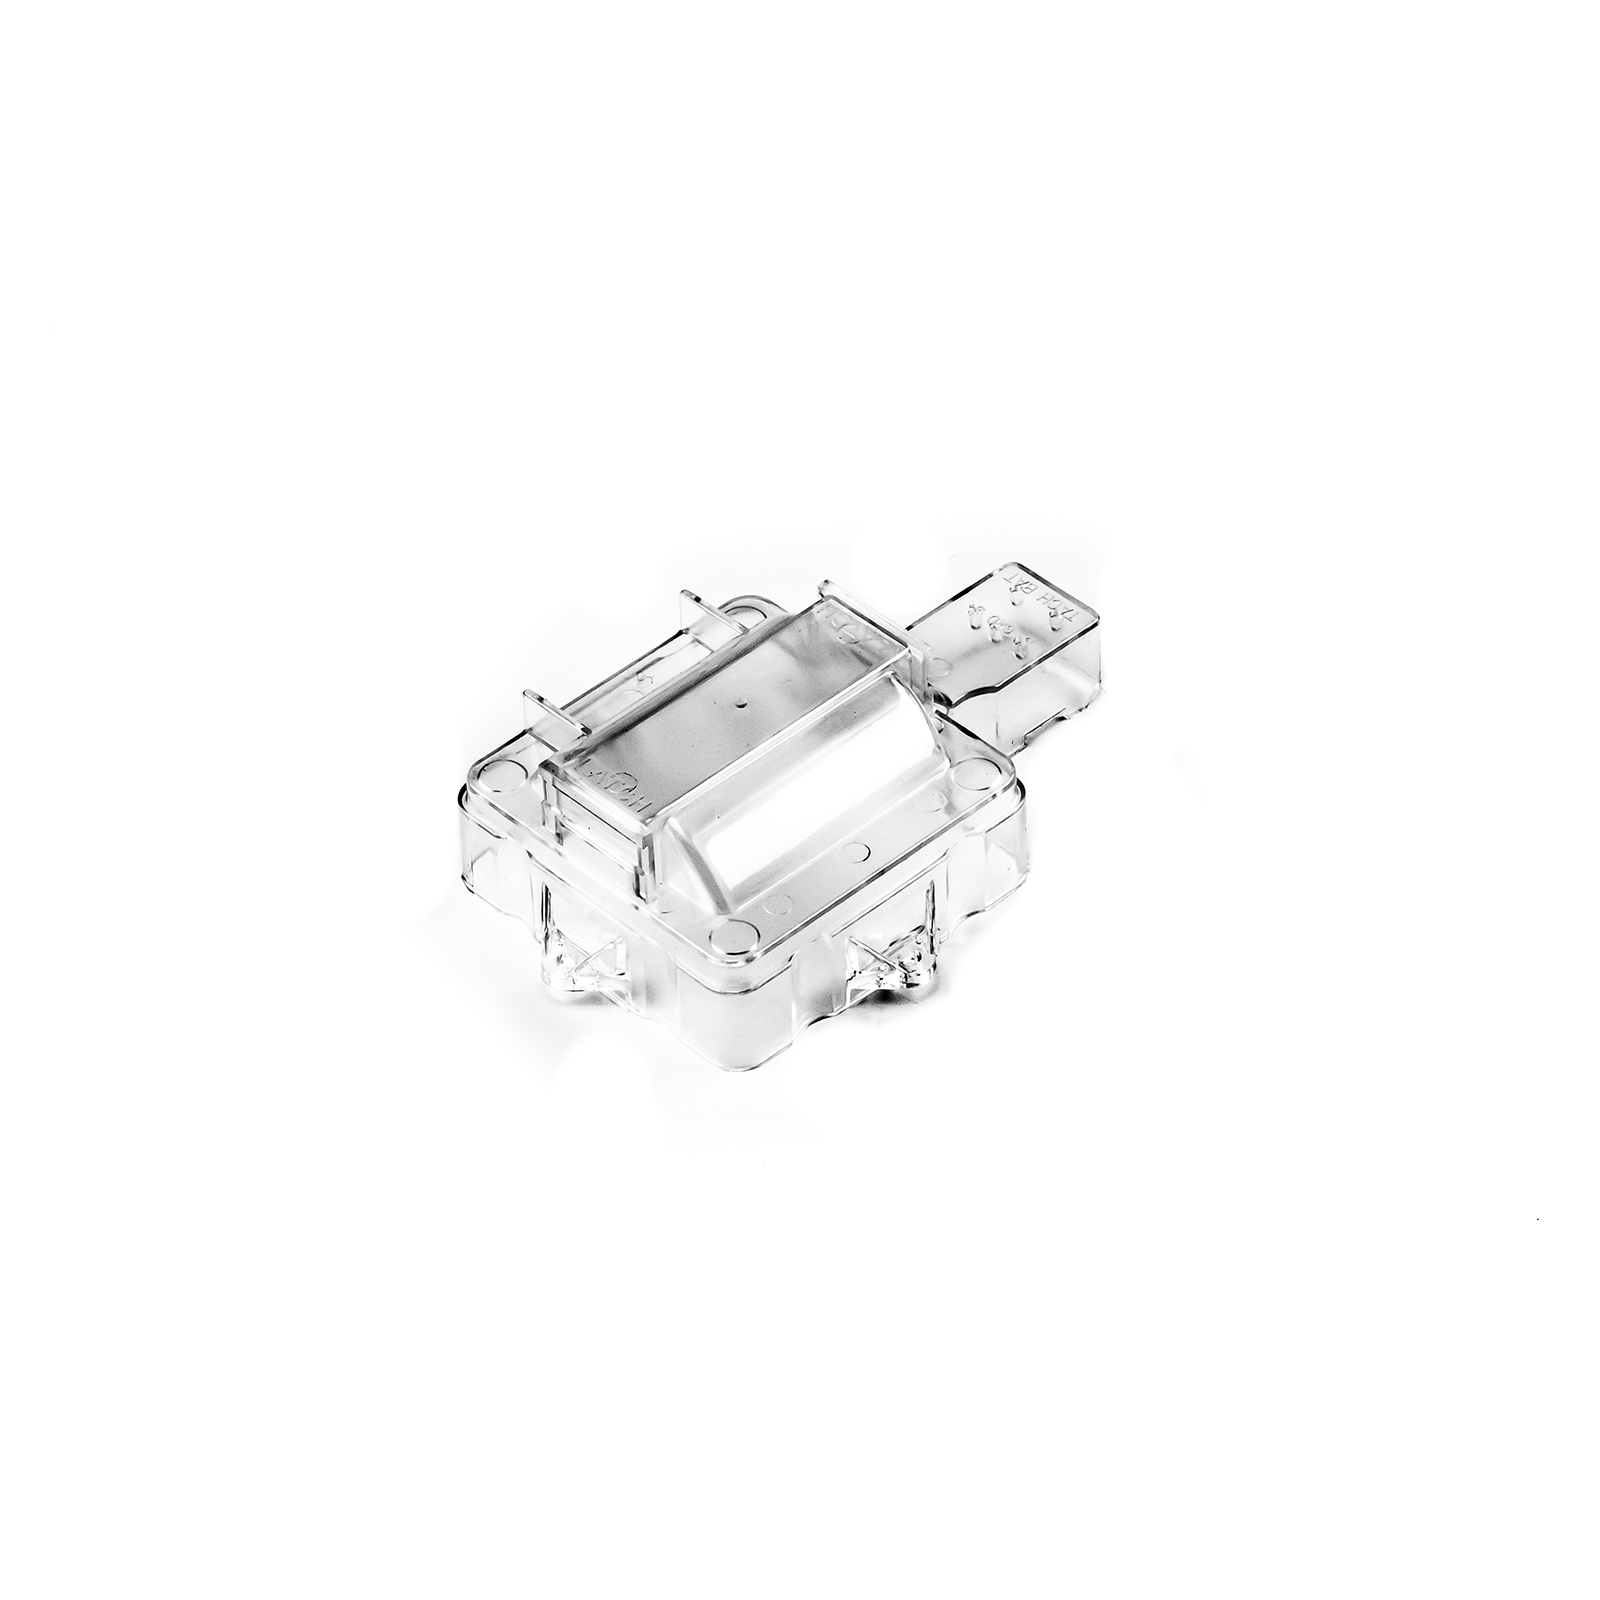 HEI Replacement Distributor Coil Cover Only - Clear